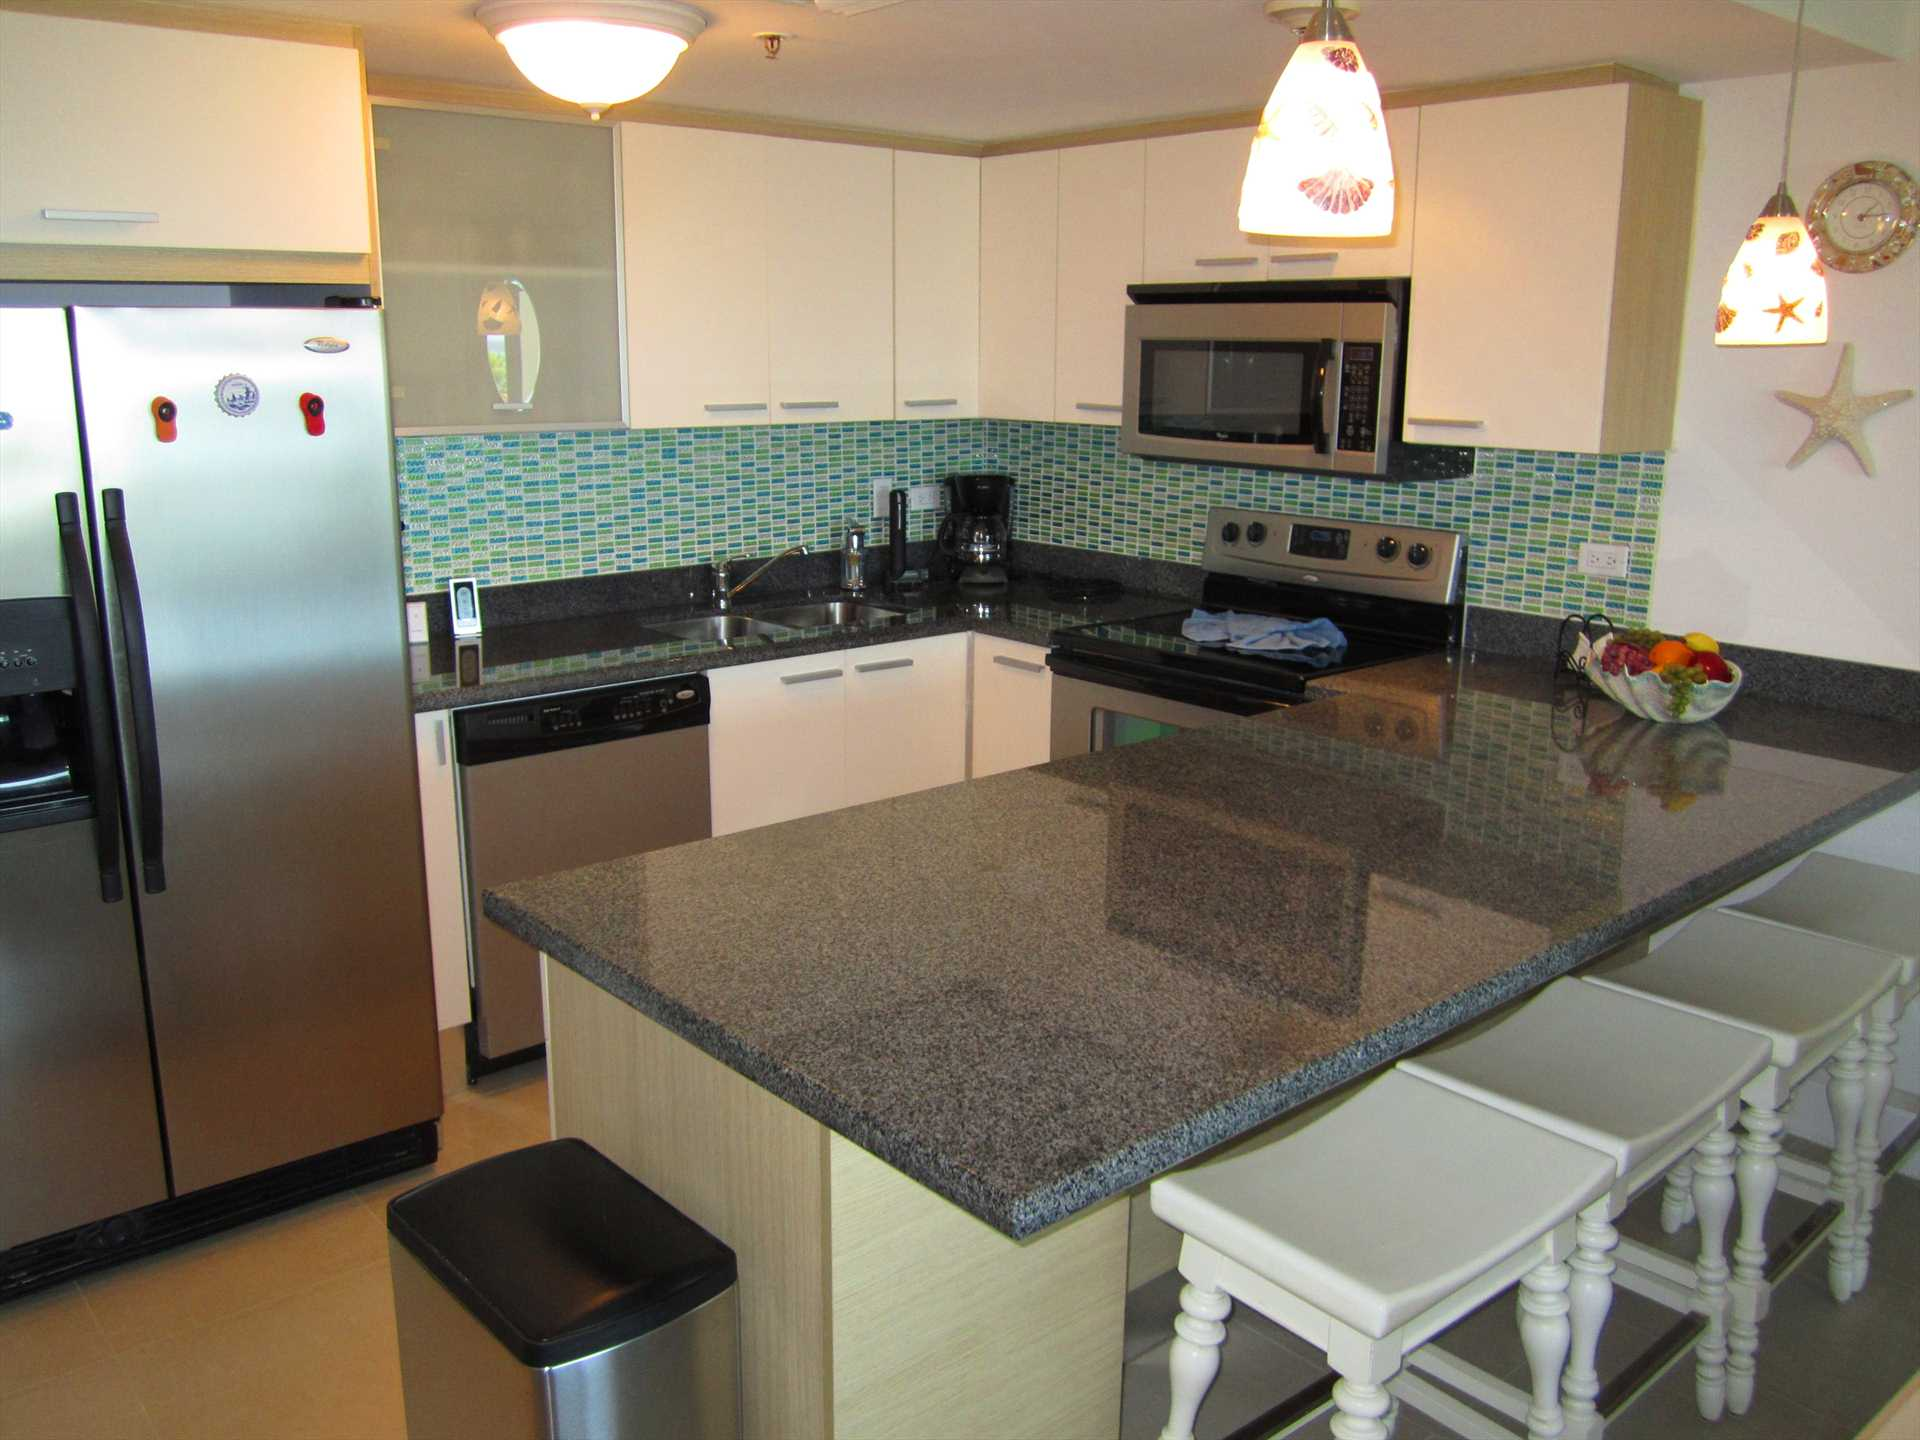 Additionally, 4-seat dining bar-table towards kitchen